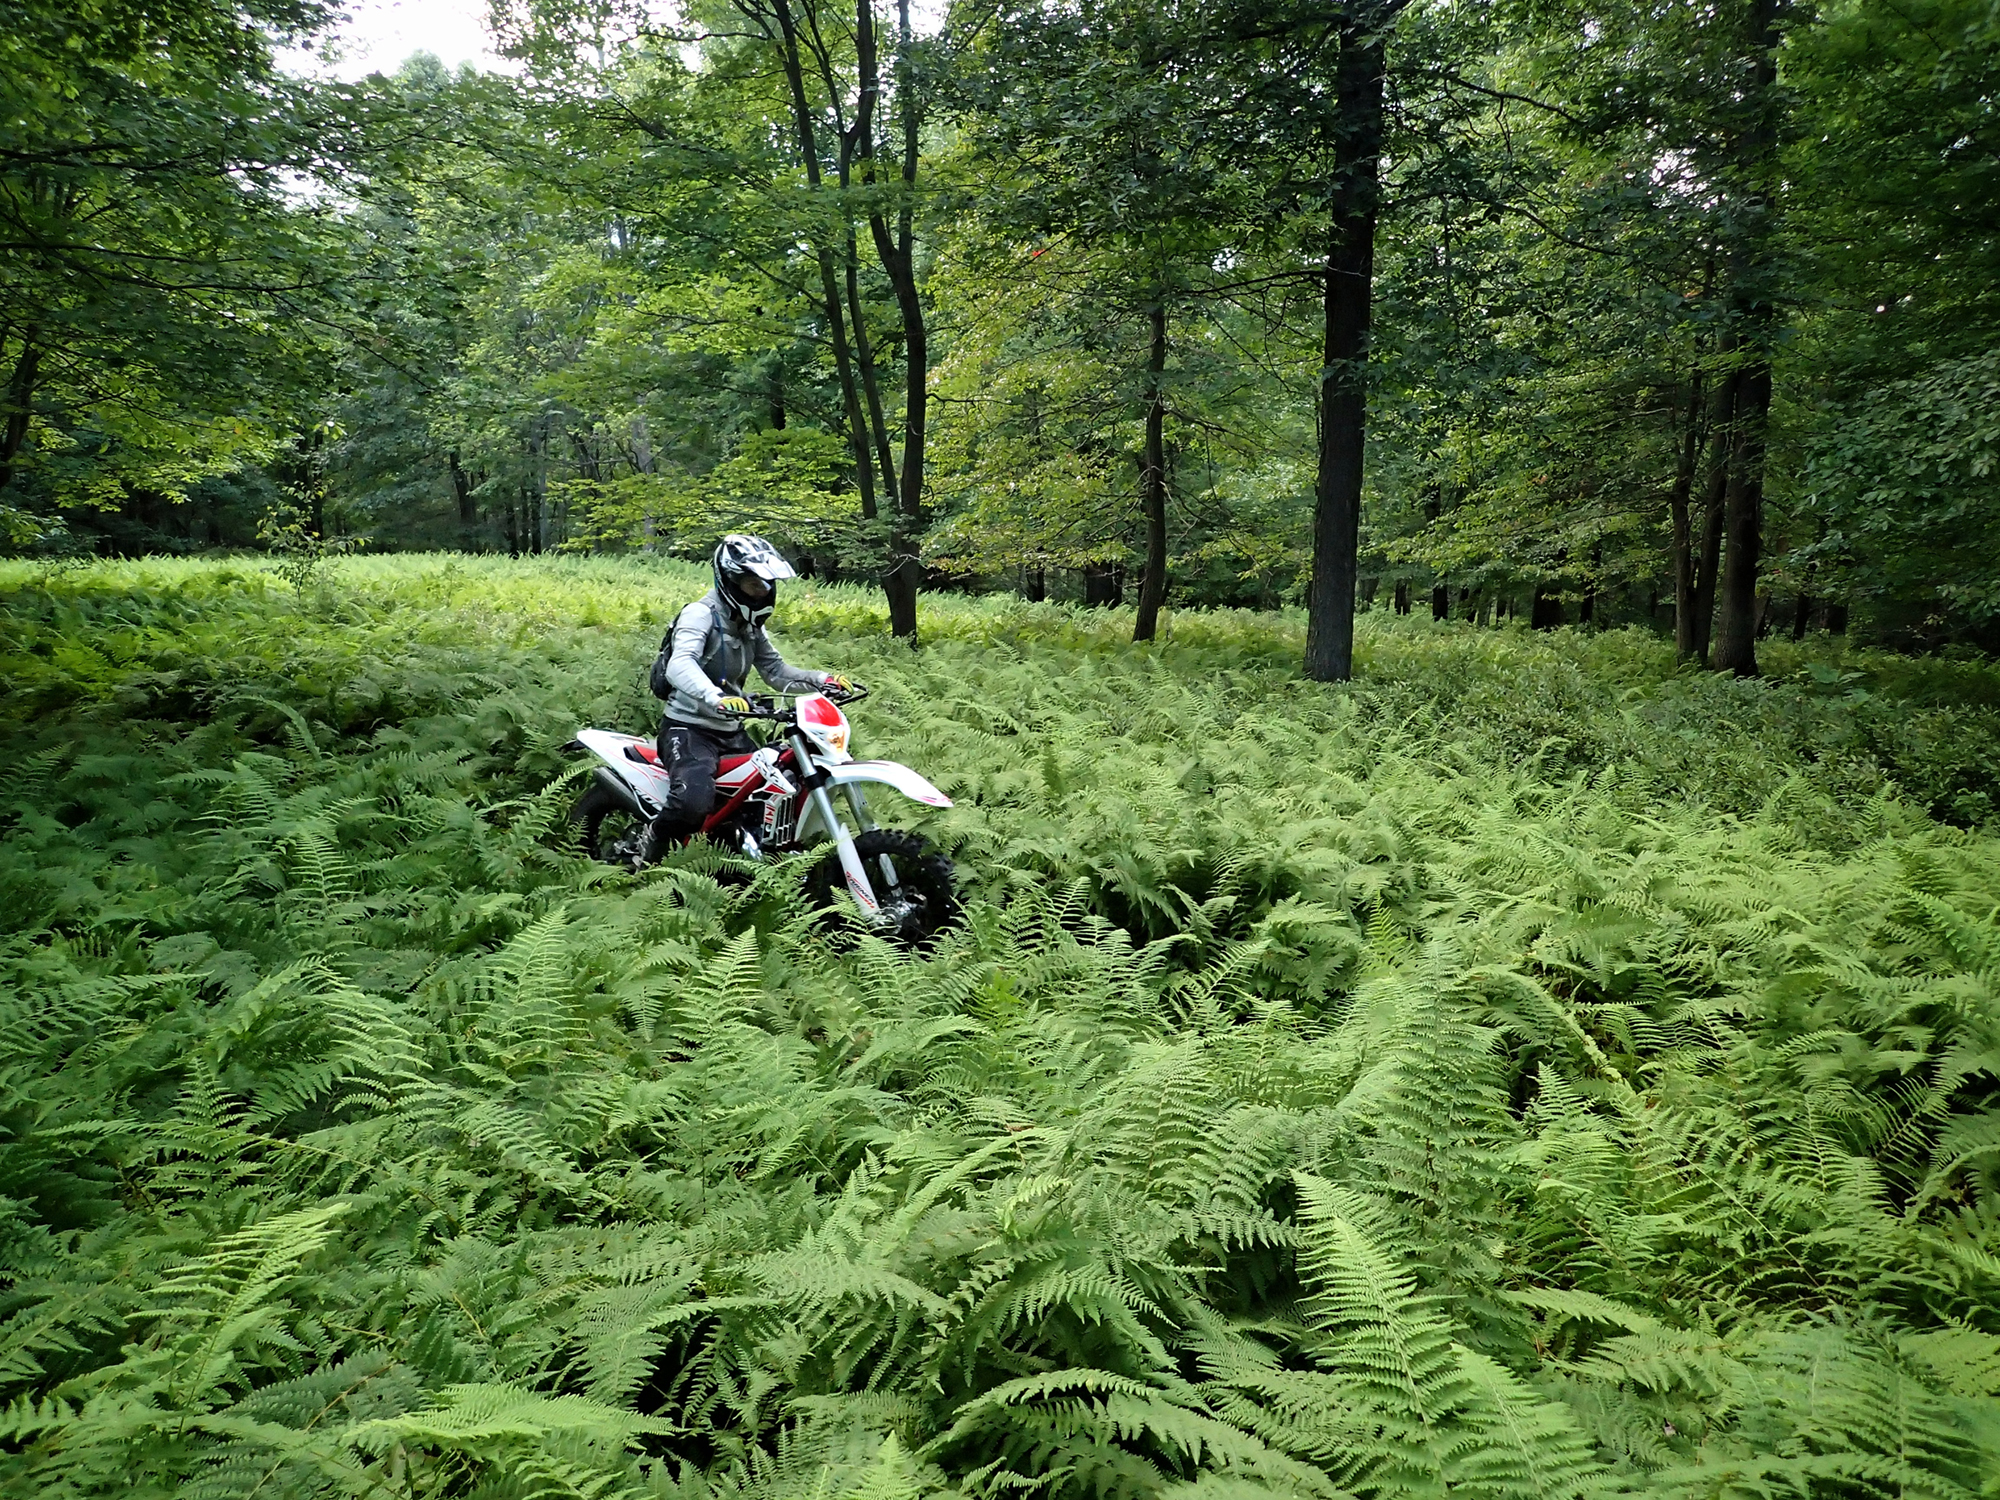 Riding the Seven Mountains Conservation Corp's (SMCC) Trails (and bike) near State College, PA.